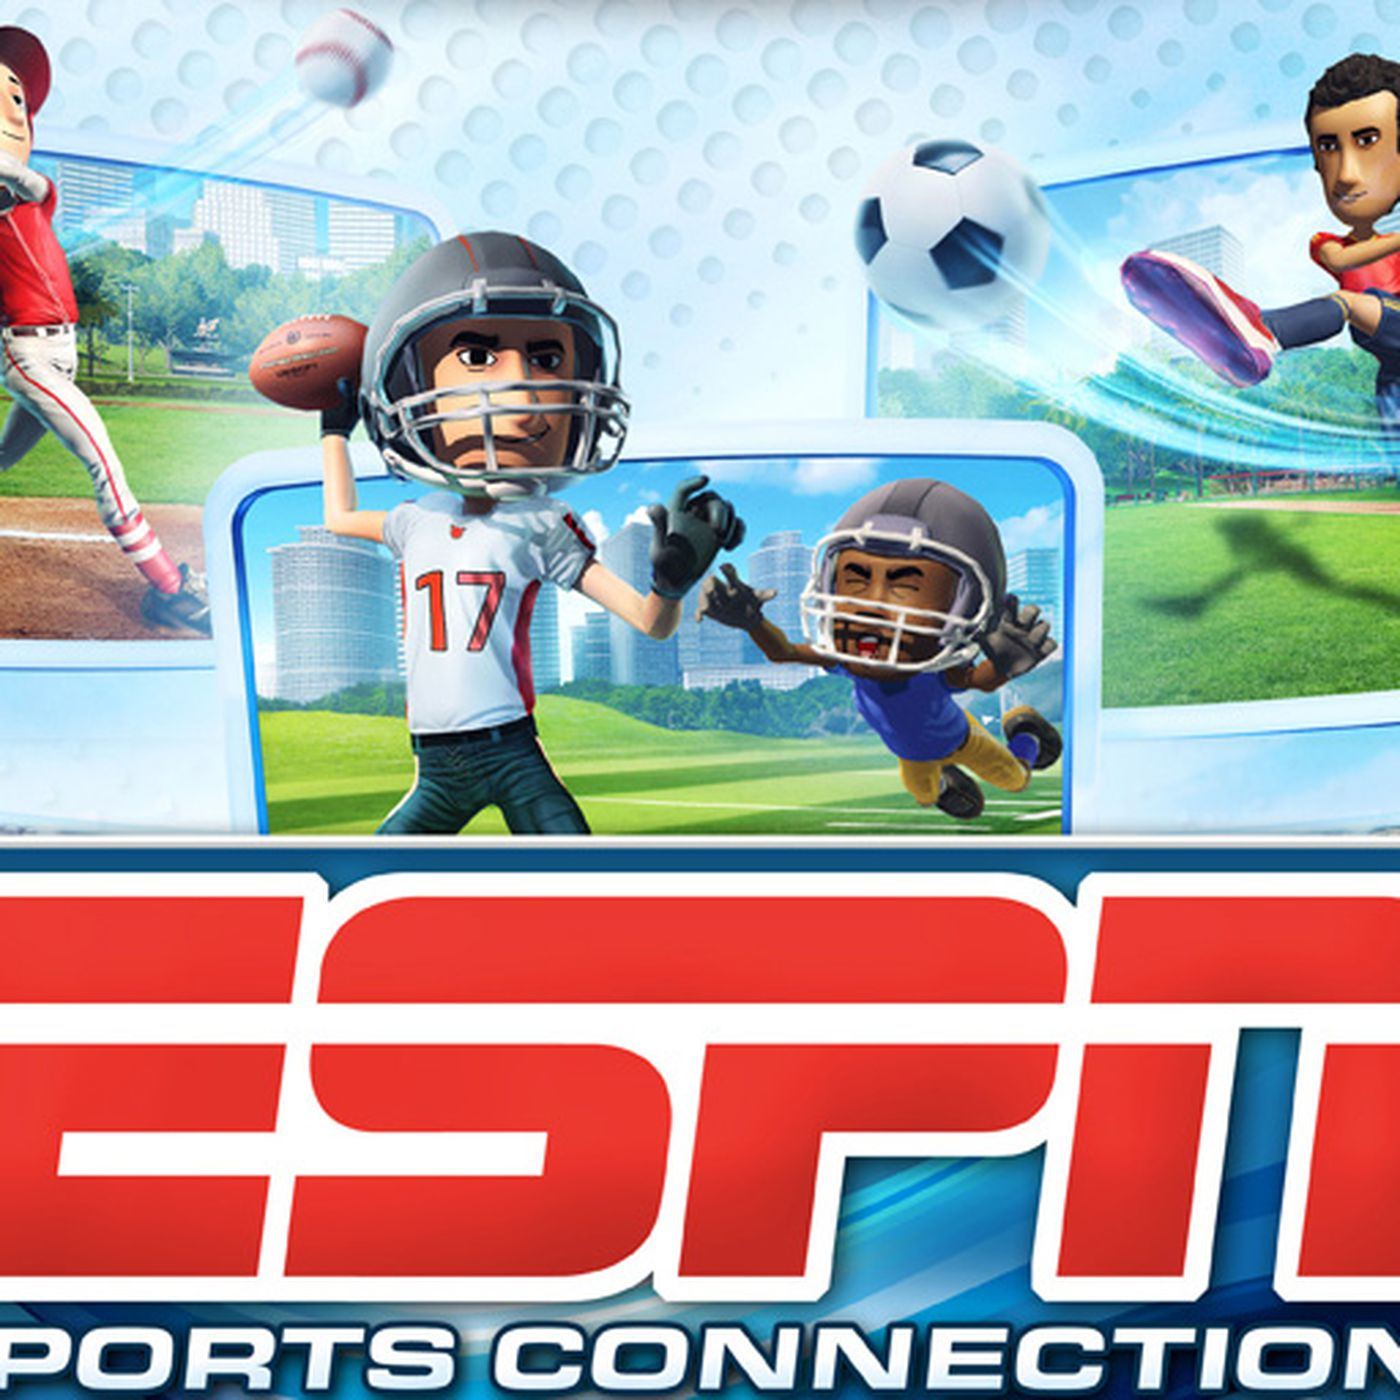 Espn Sports Connection Rebranding Of Sports Connection Announced By Ubisoft For Wii U Polygon